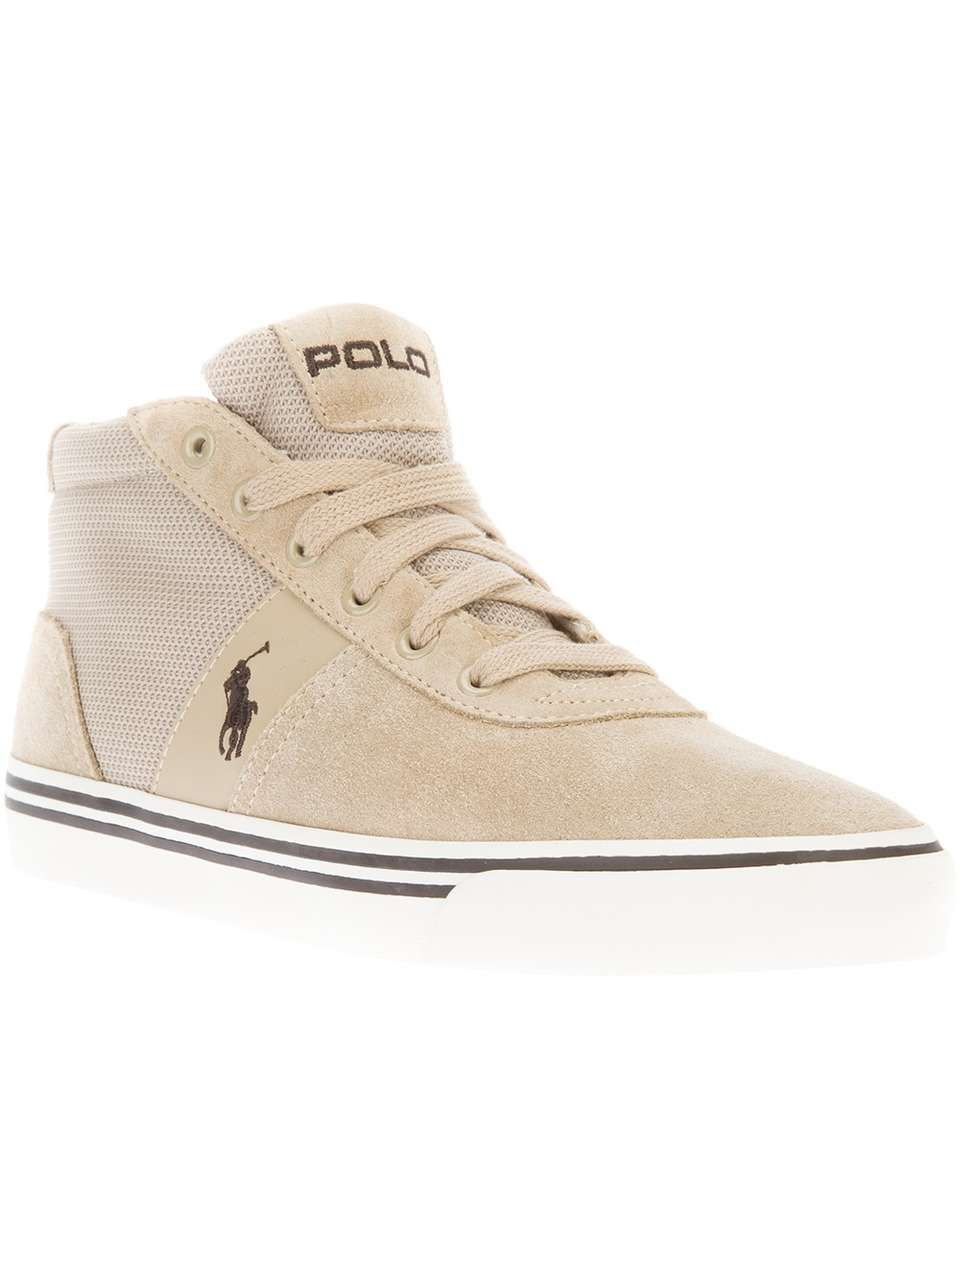 Polo Ralph Lauren hitop logo trainer on Wantering